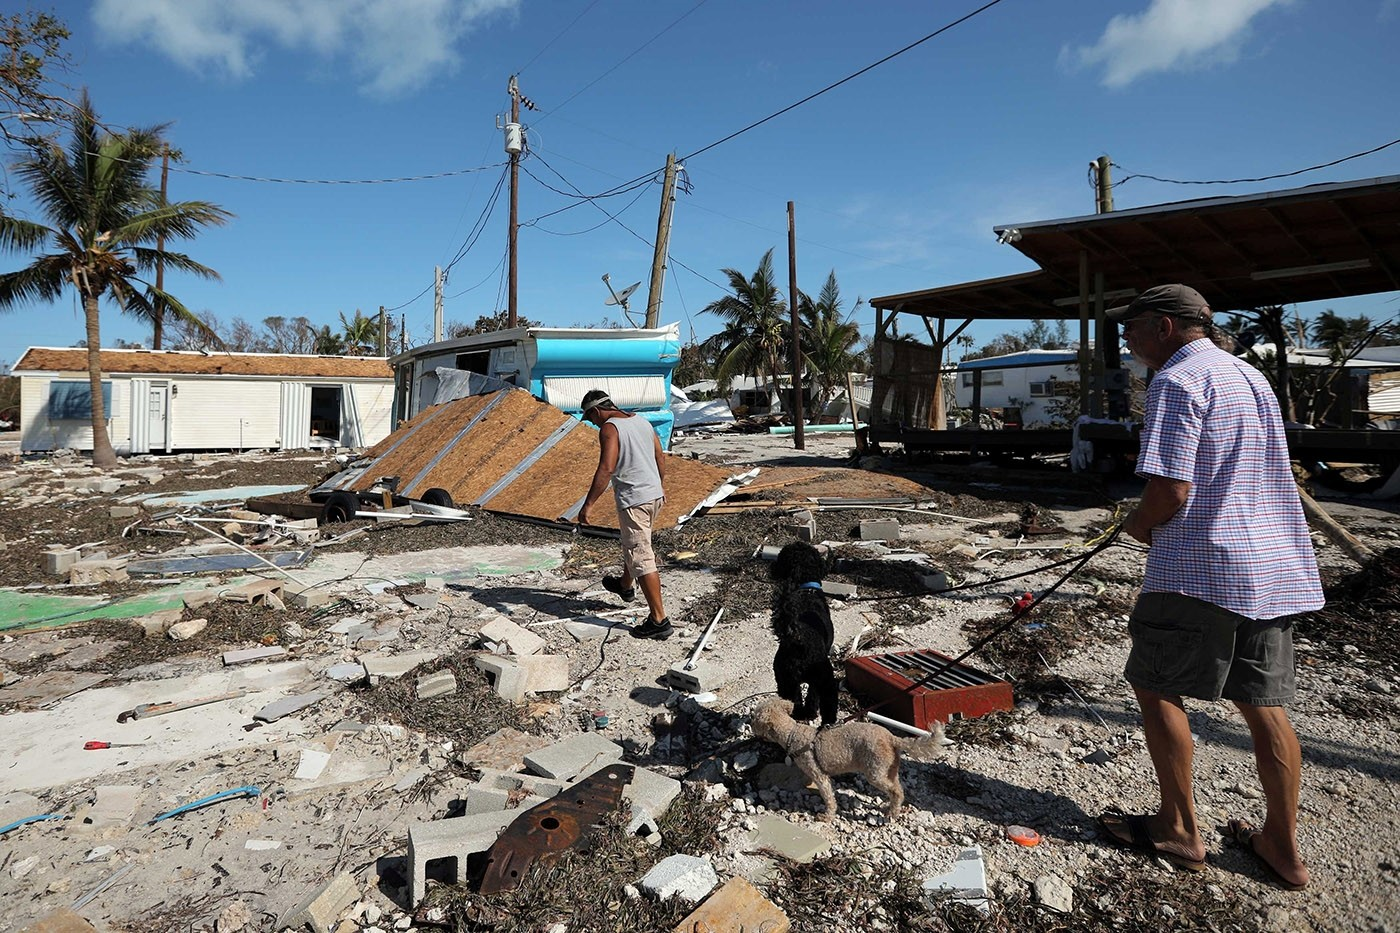 Local residents walk along a destroyed trailer park after Hurricane Irma strikes Florida, in Plantation Key in the Florida Keys, U.S., September 12, 2017. (Reuters Photo)